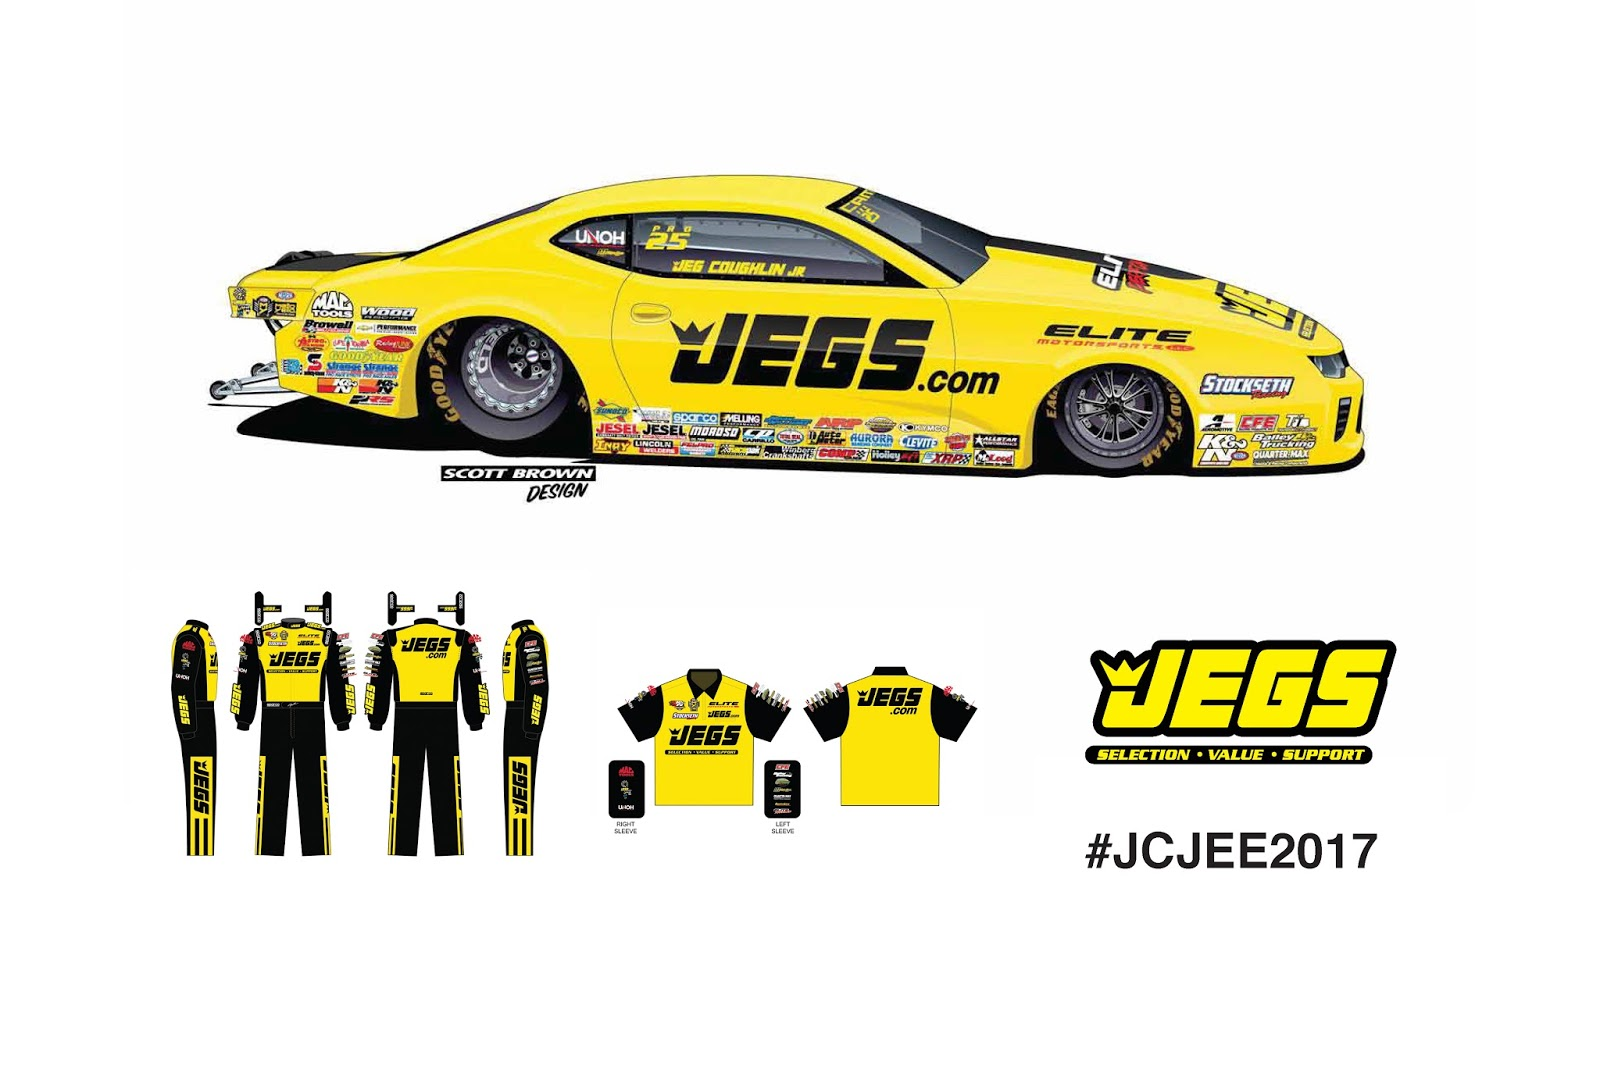 ... multi-time world champion drag racers Jeg Coughlin Jr. and Erica Enders will fight for the 2017 Mello Yello Drag Racing Series Pro Stock crown in a pair ...